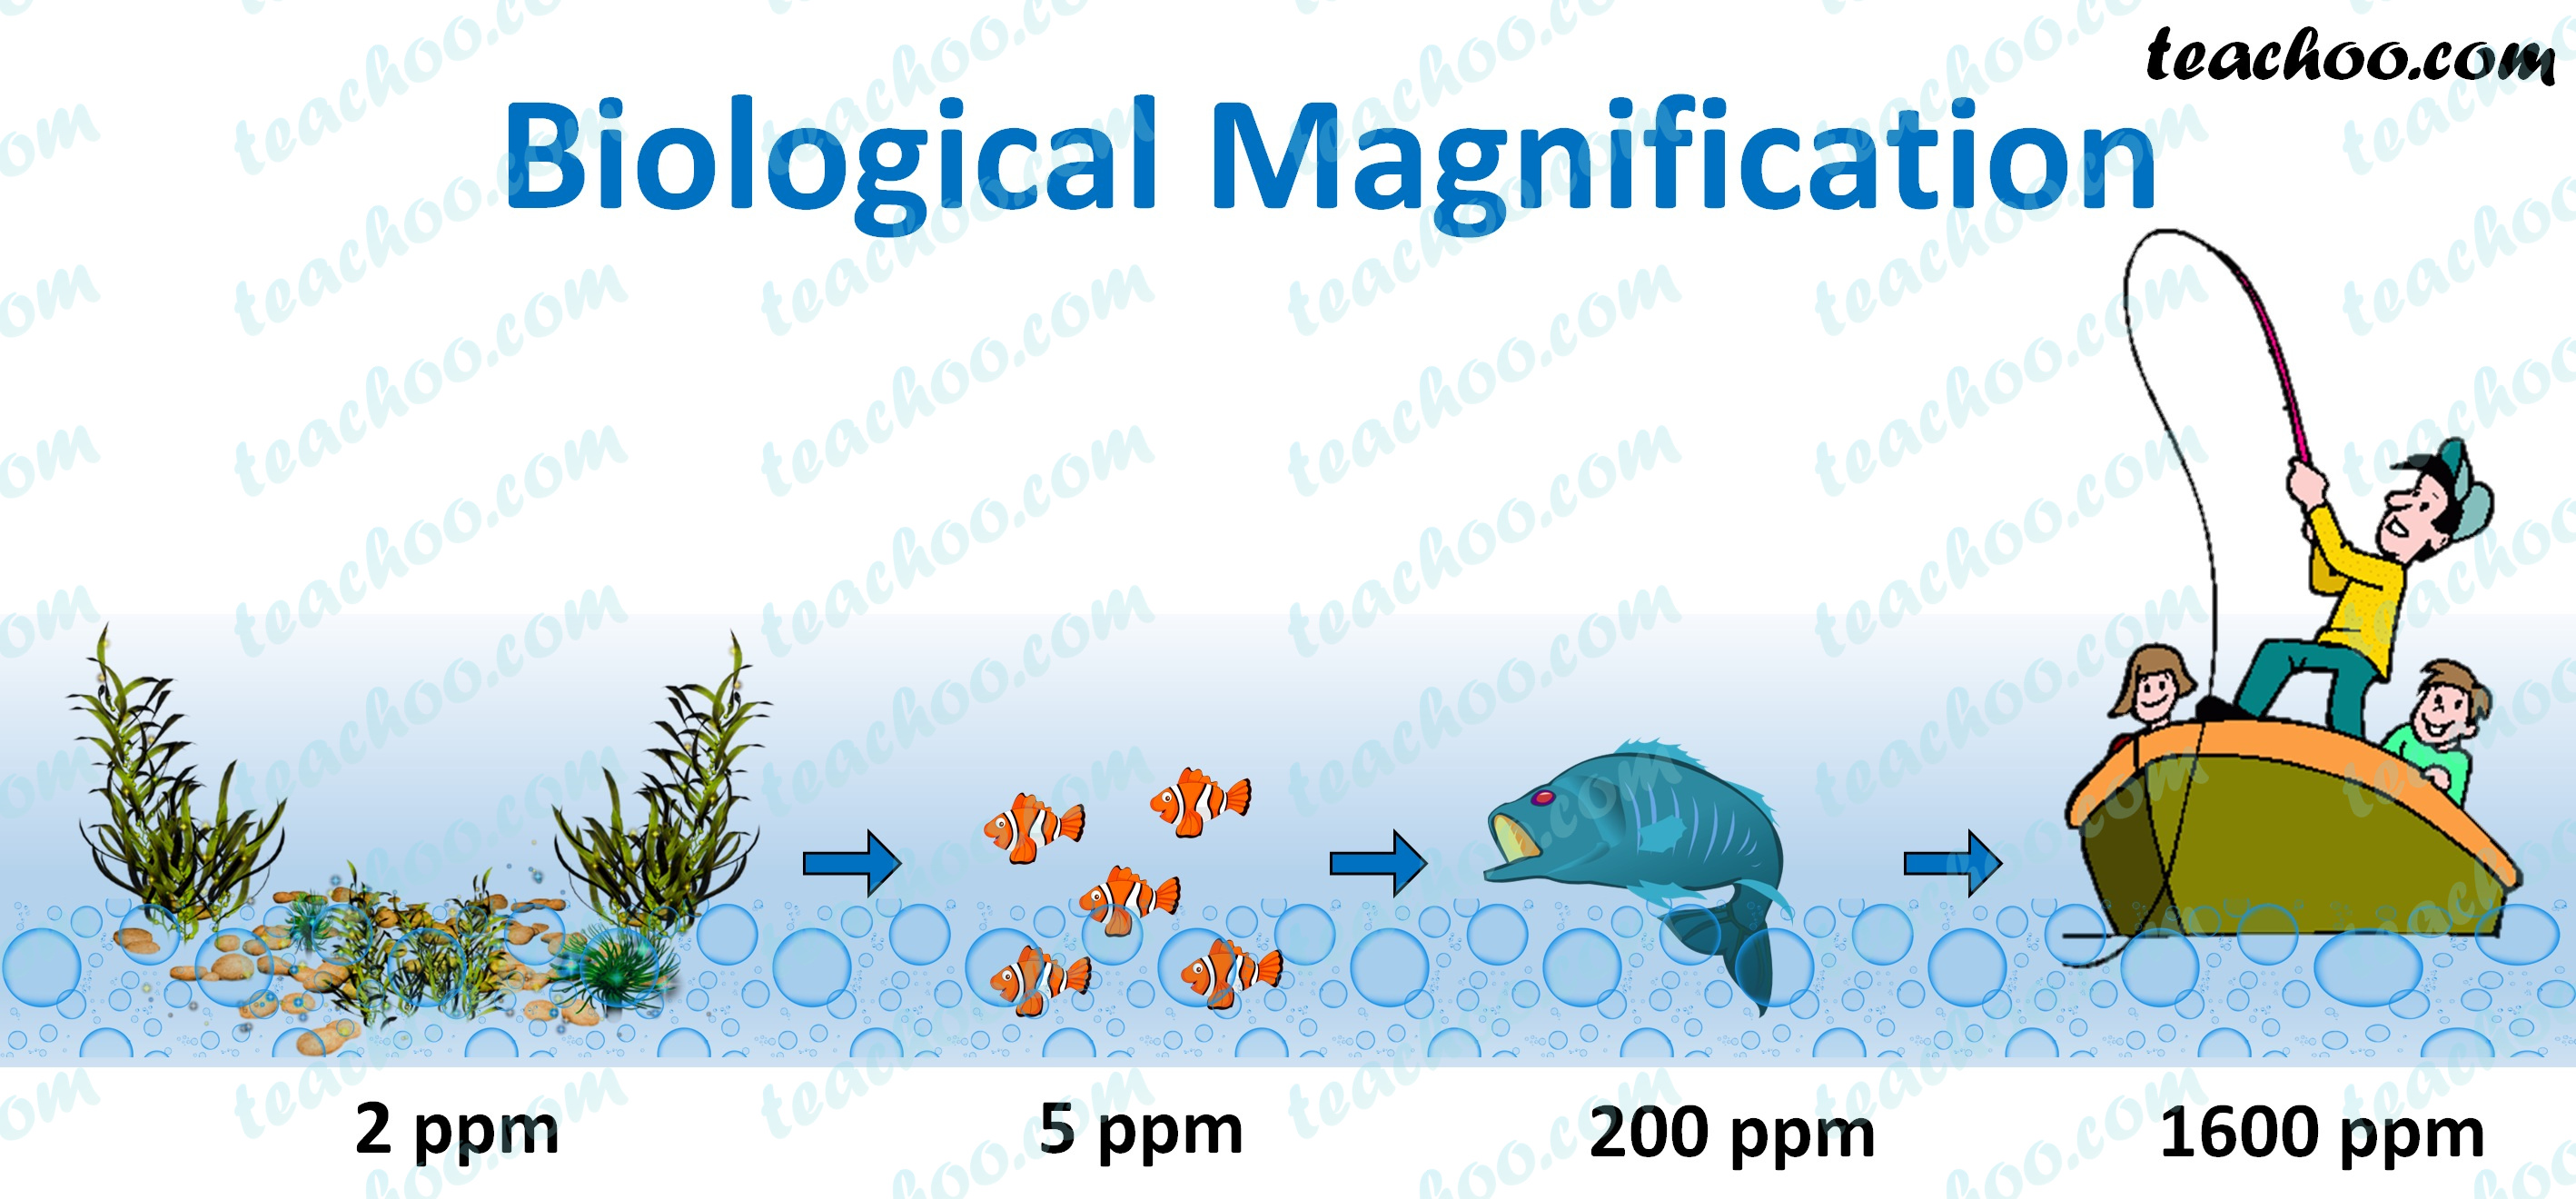 biological-magnification---teachoo.jpg